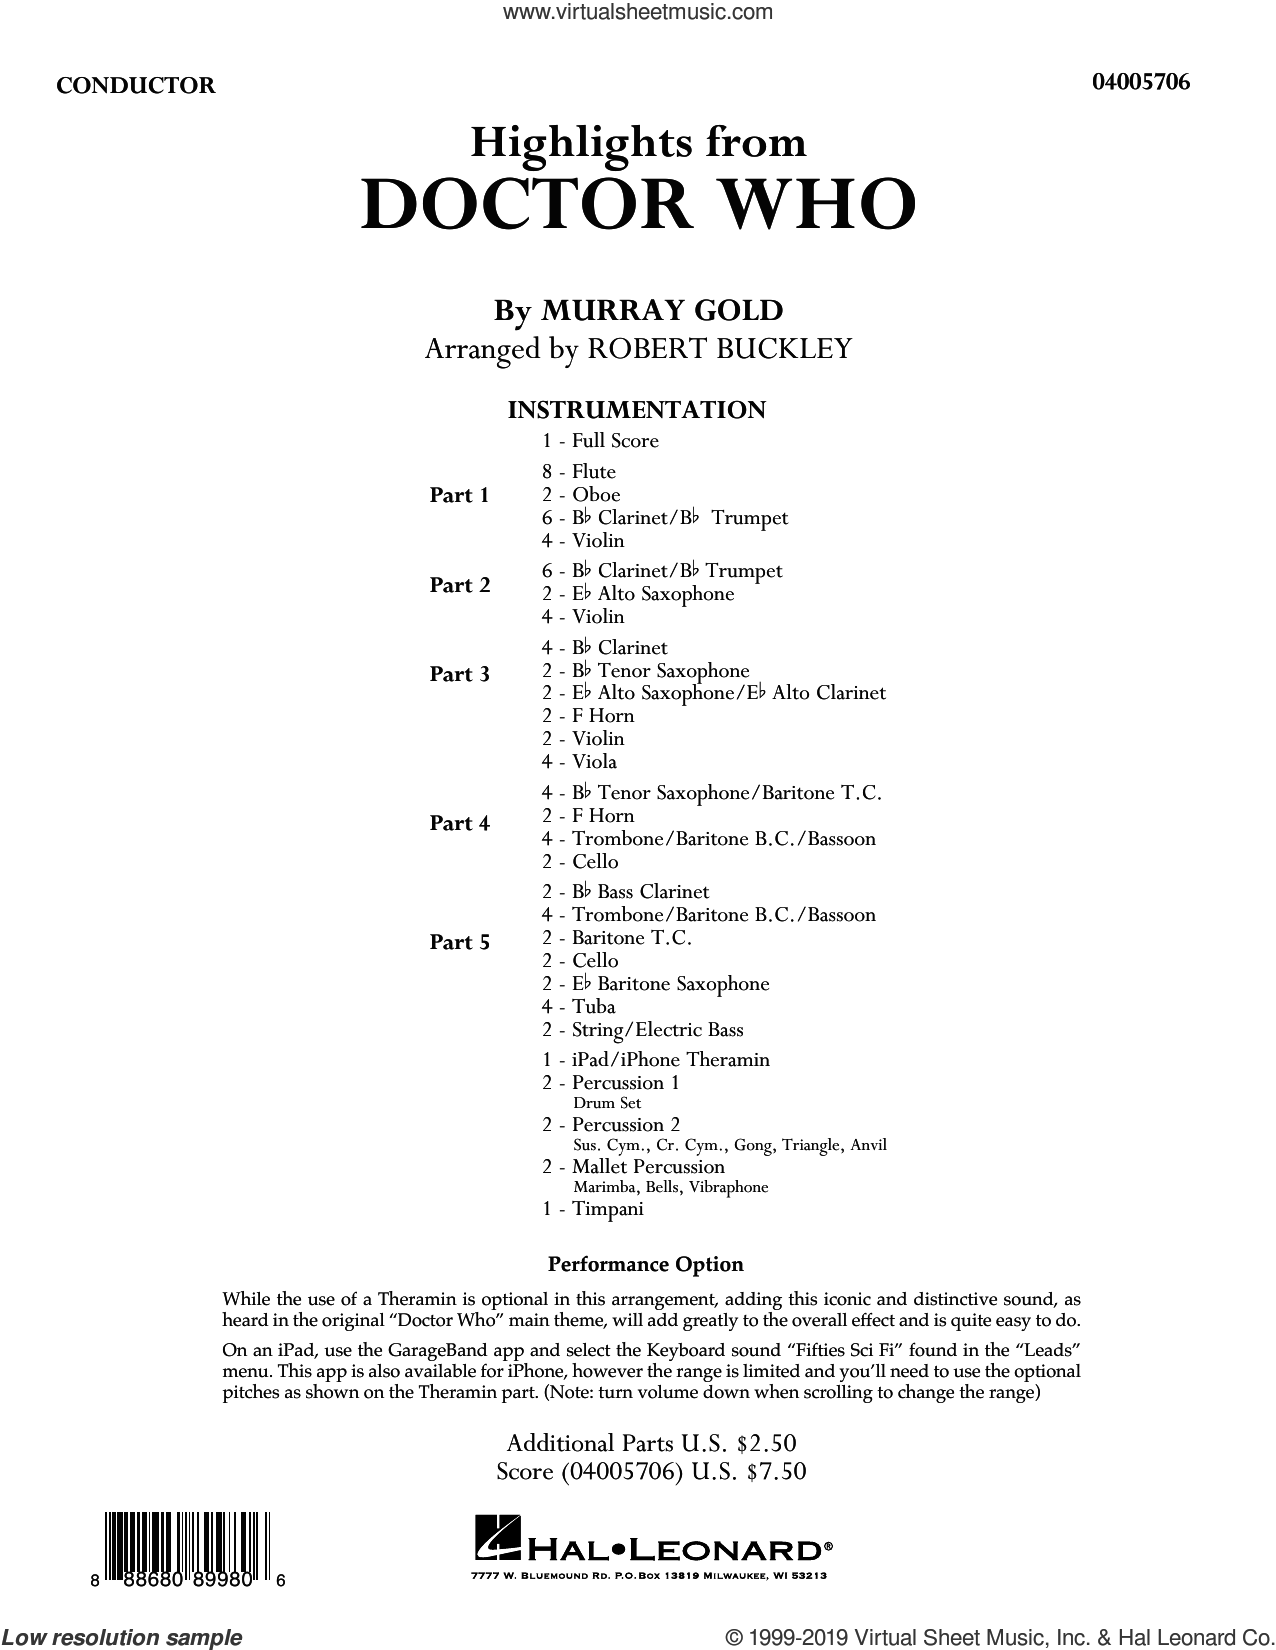 Highlights from Doctor Who (arr. Robert Buckley) (COMPLETE) sheet music for concert band by Robert Buckley and Murray Gold, intermediate skill level